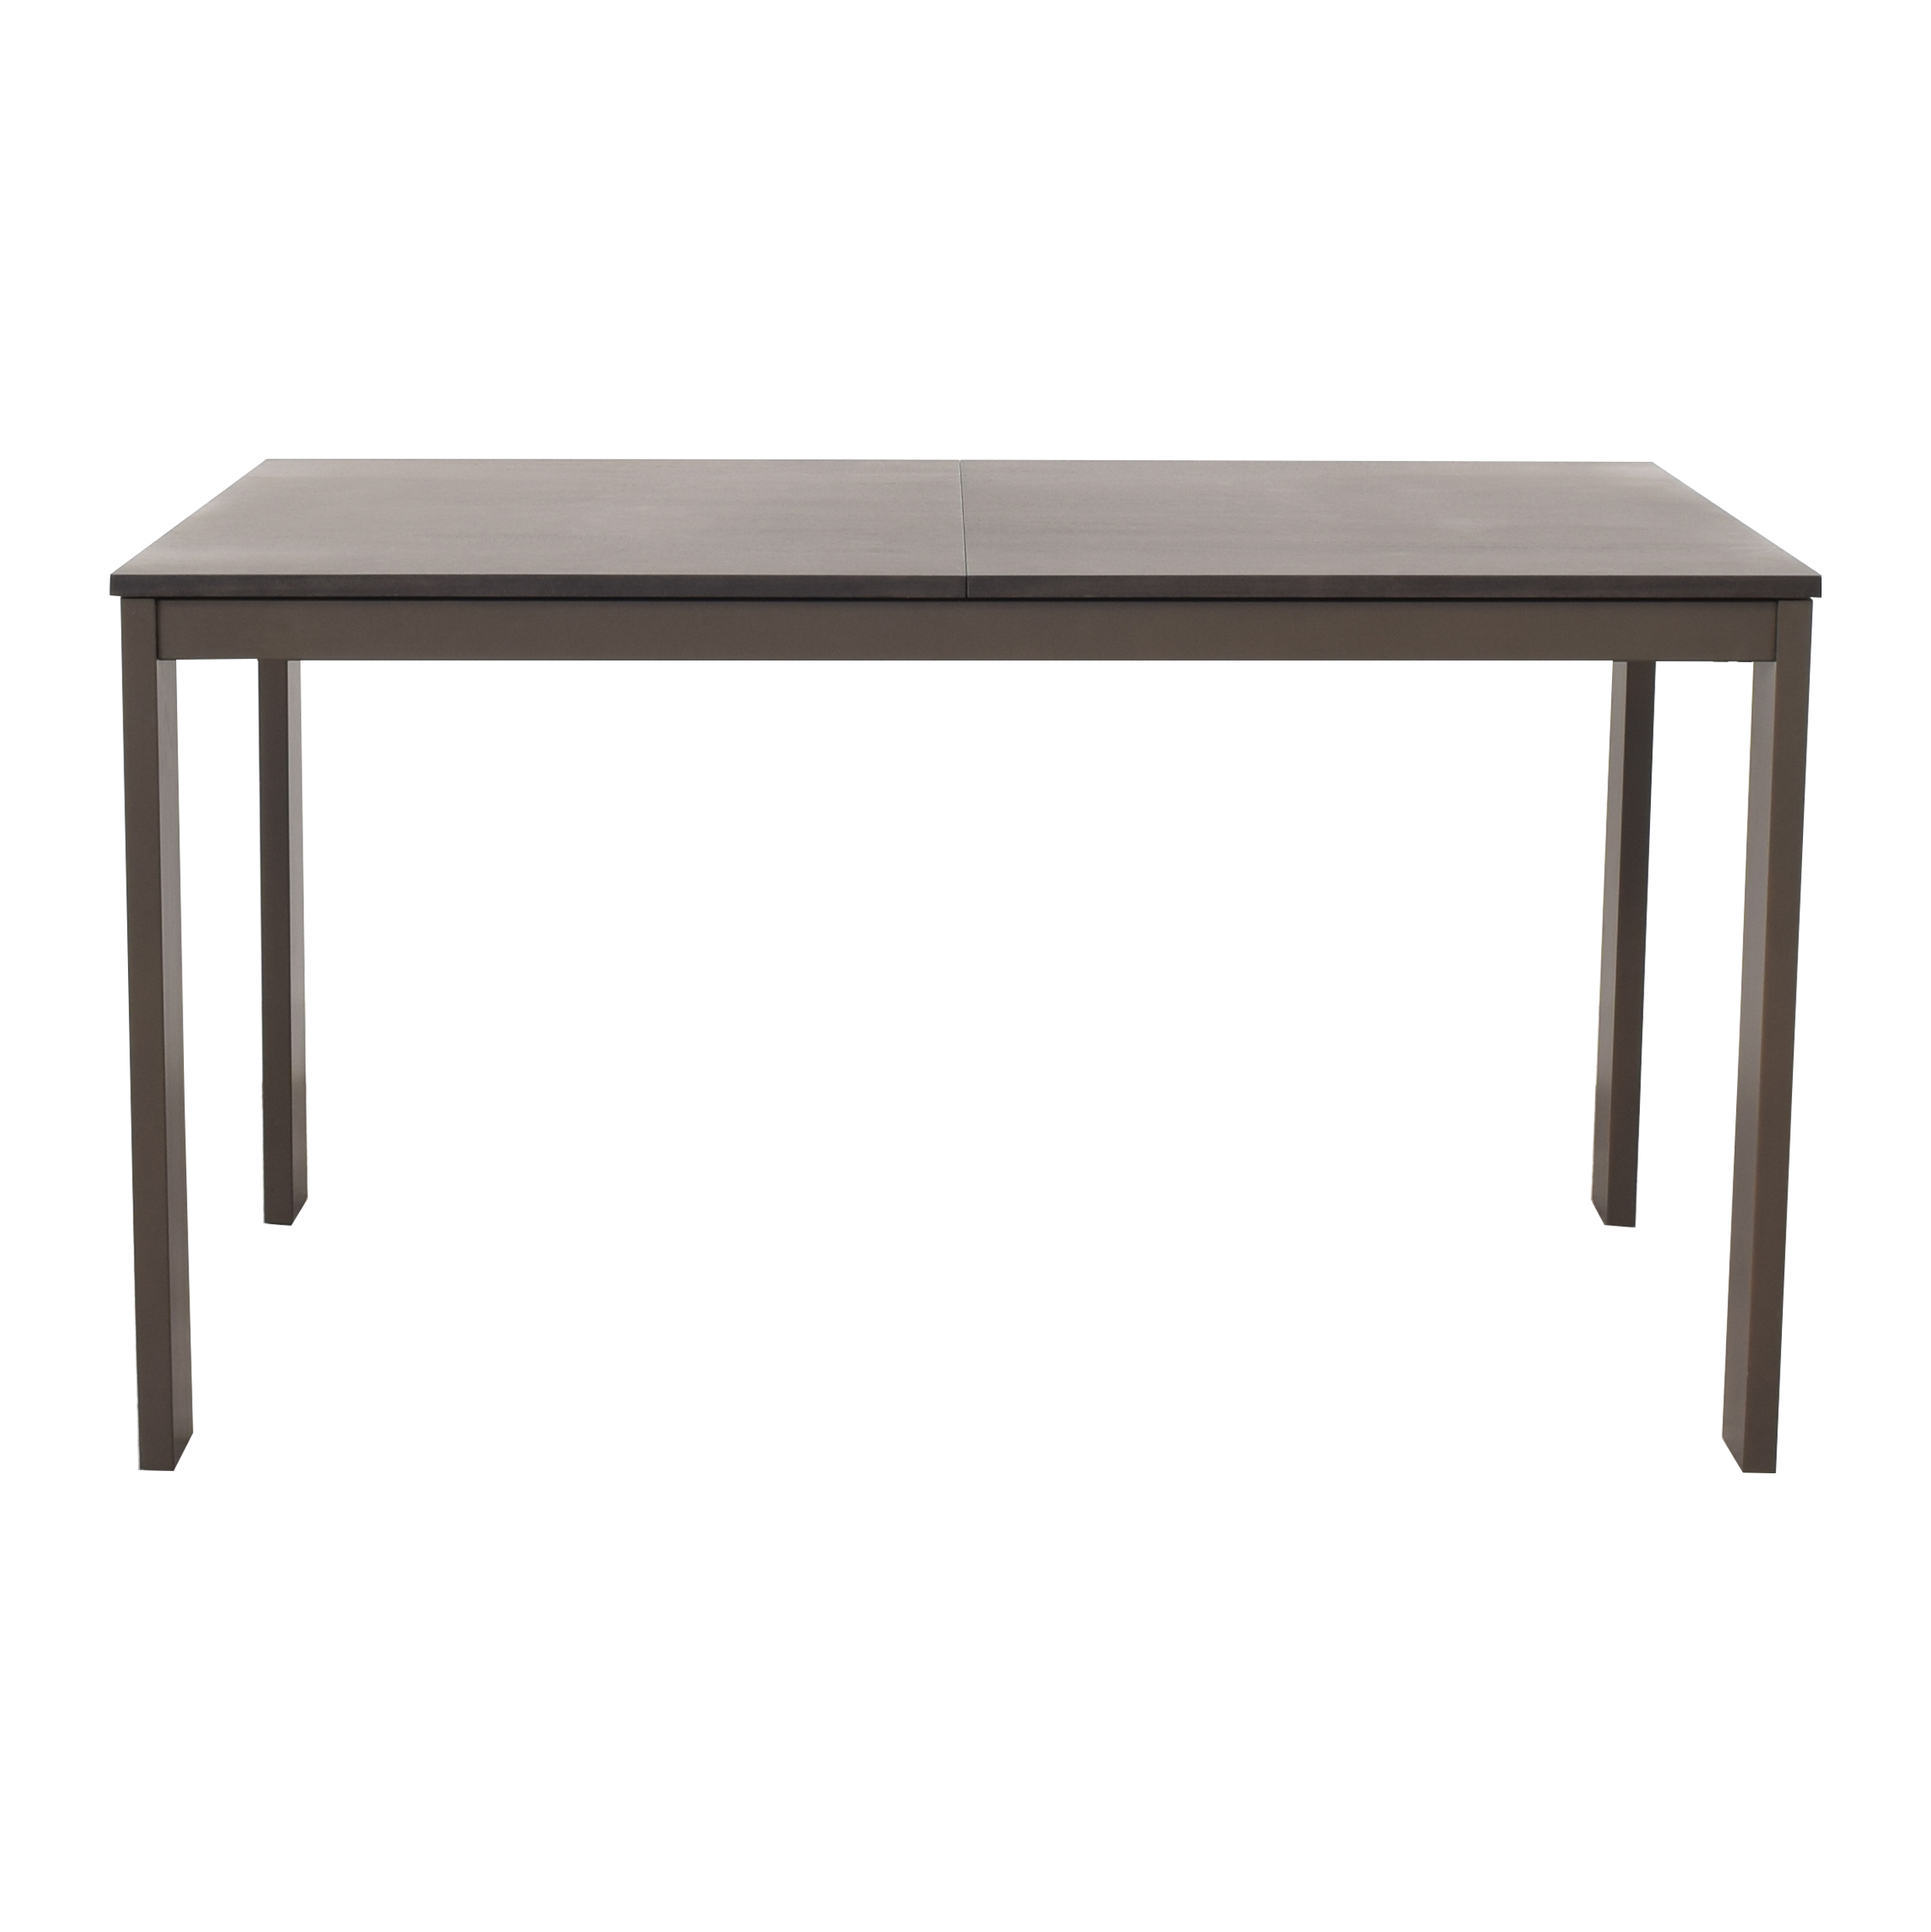 CB2 CB2 Core Extension Dining Table discount